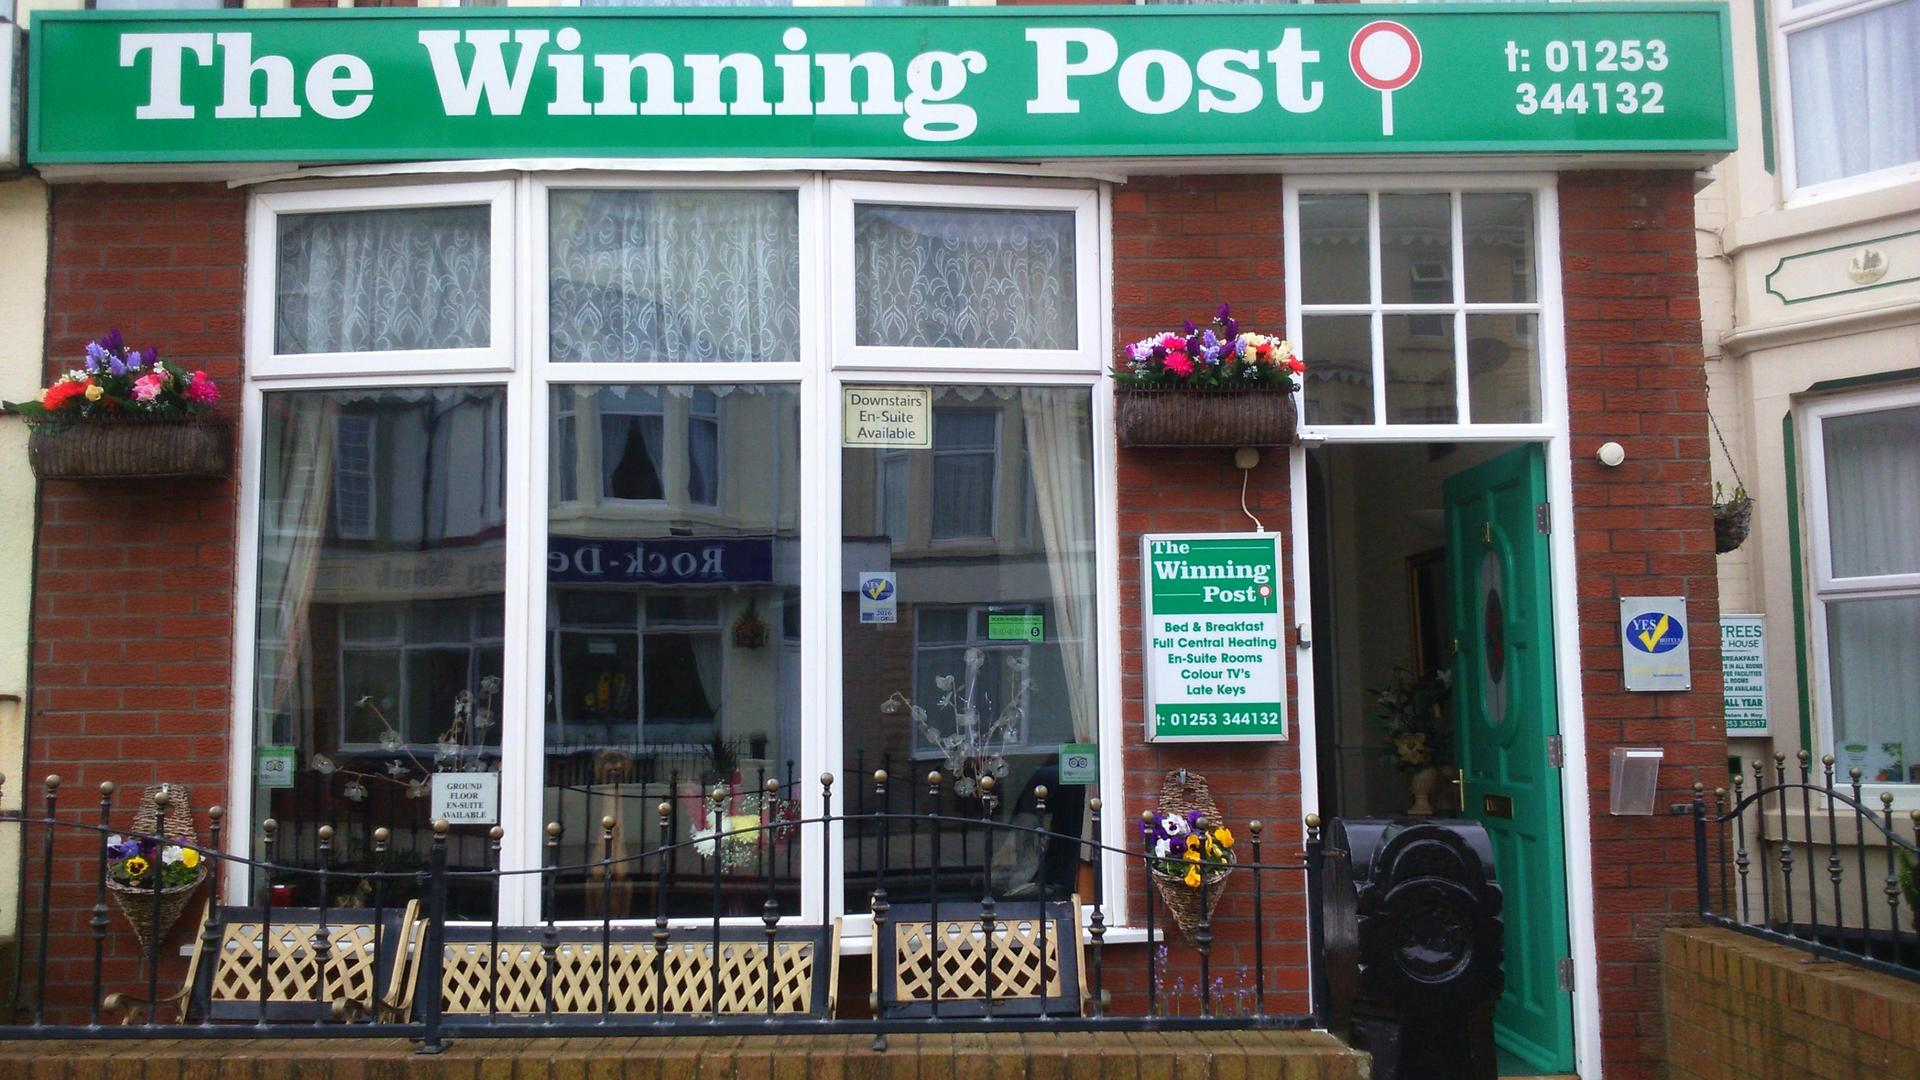 The Winning Post in Blackpool